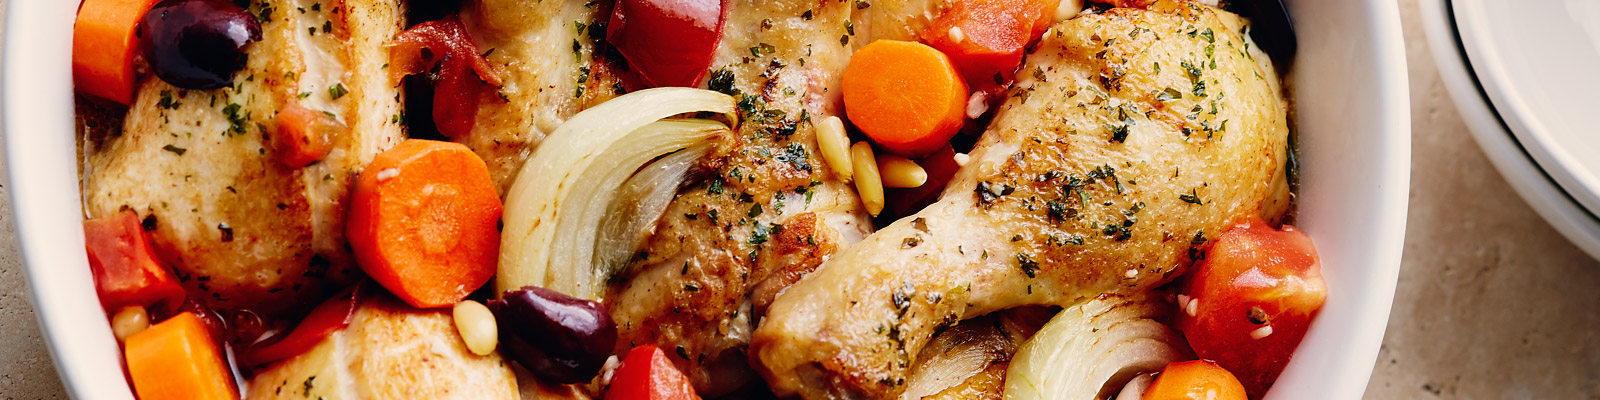 1600x400_Recipe_Spanish_Chicken.jpg